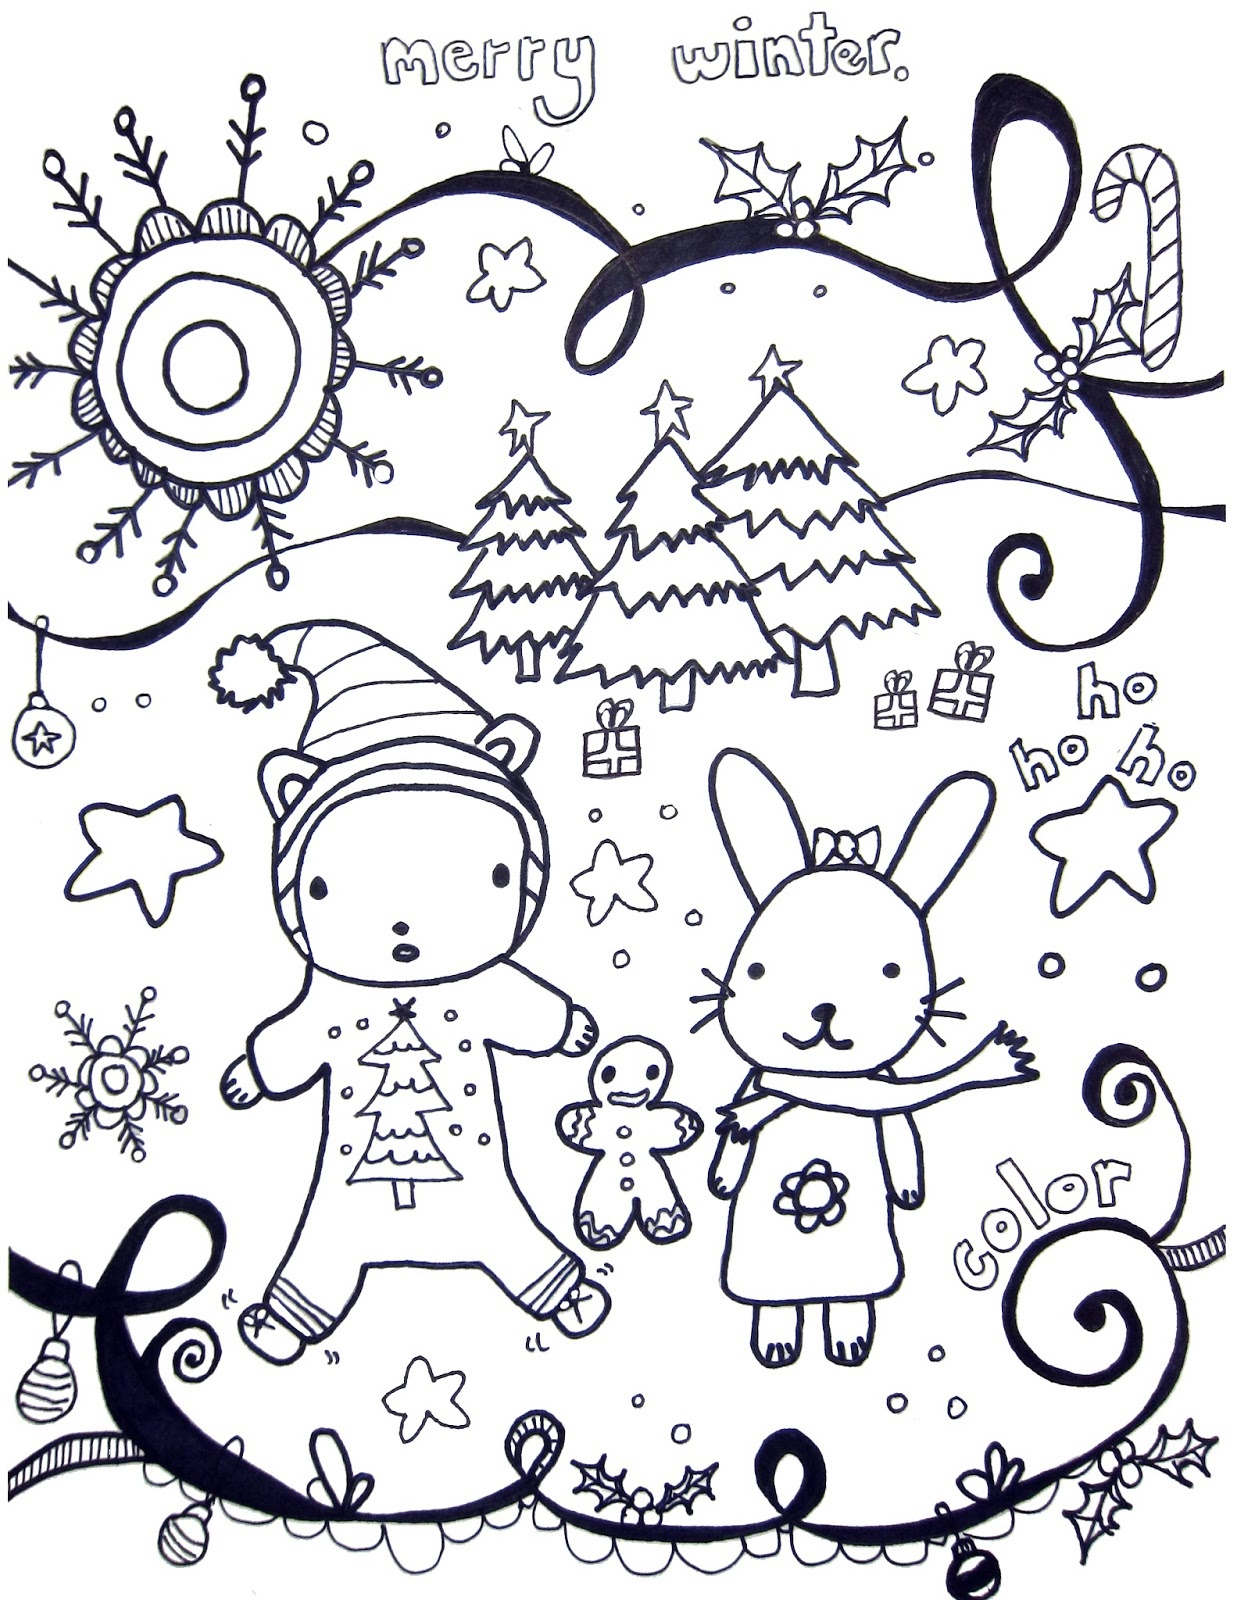 Printable Winter Coloring Pages - Marcia Beckett - Free Printable Winter Coloring Pages